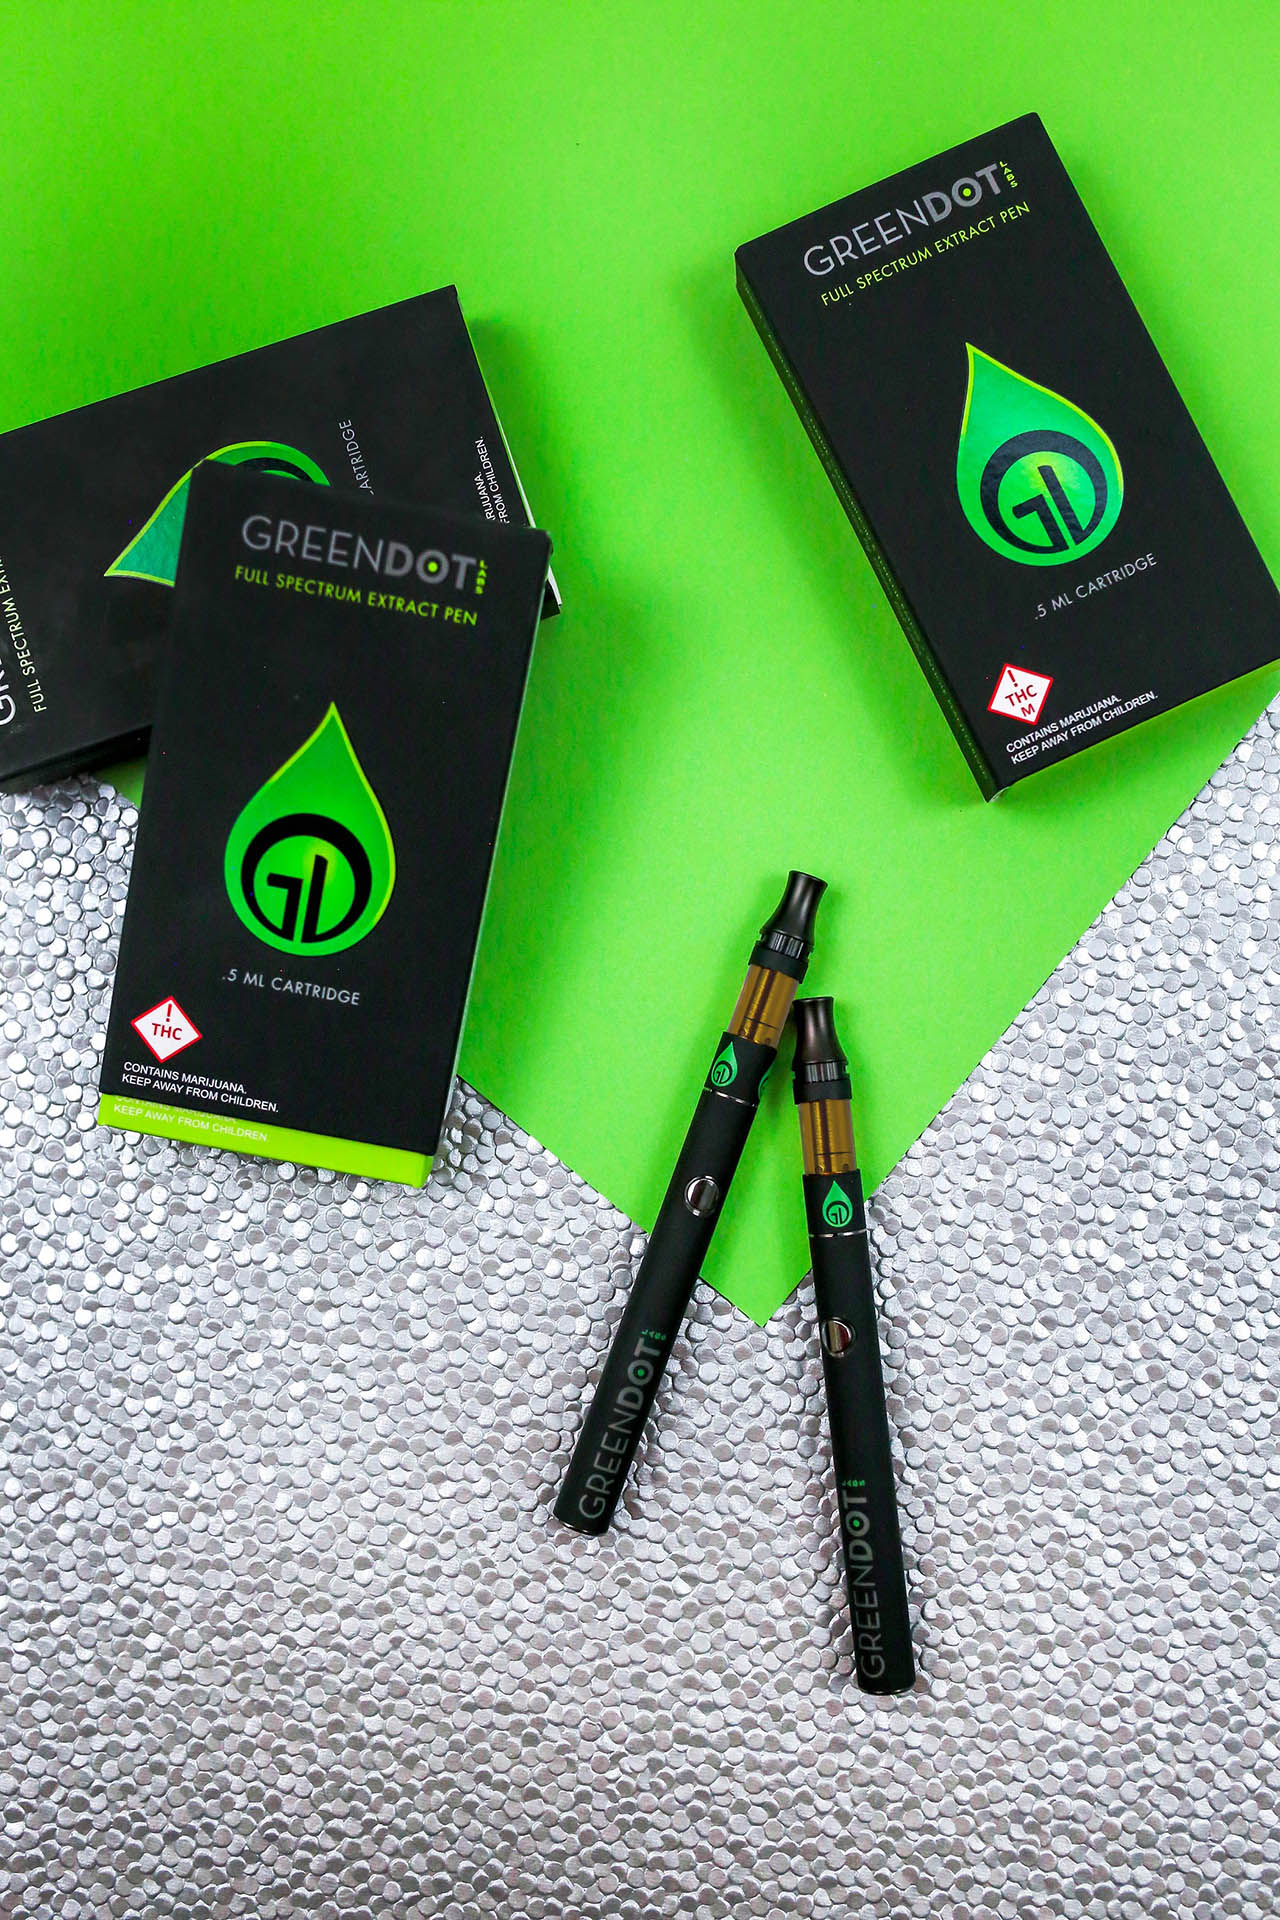 Bring Green Dot Labs fine cannabis extracts with you anywhere in the state of Colorado!